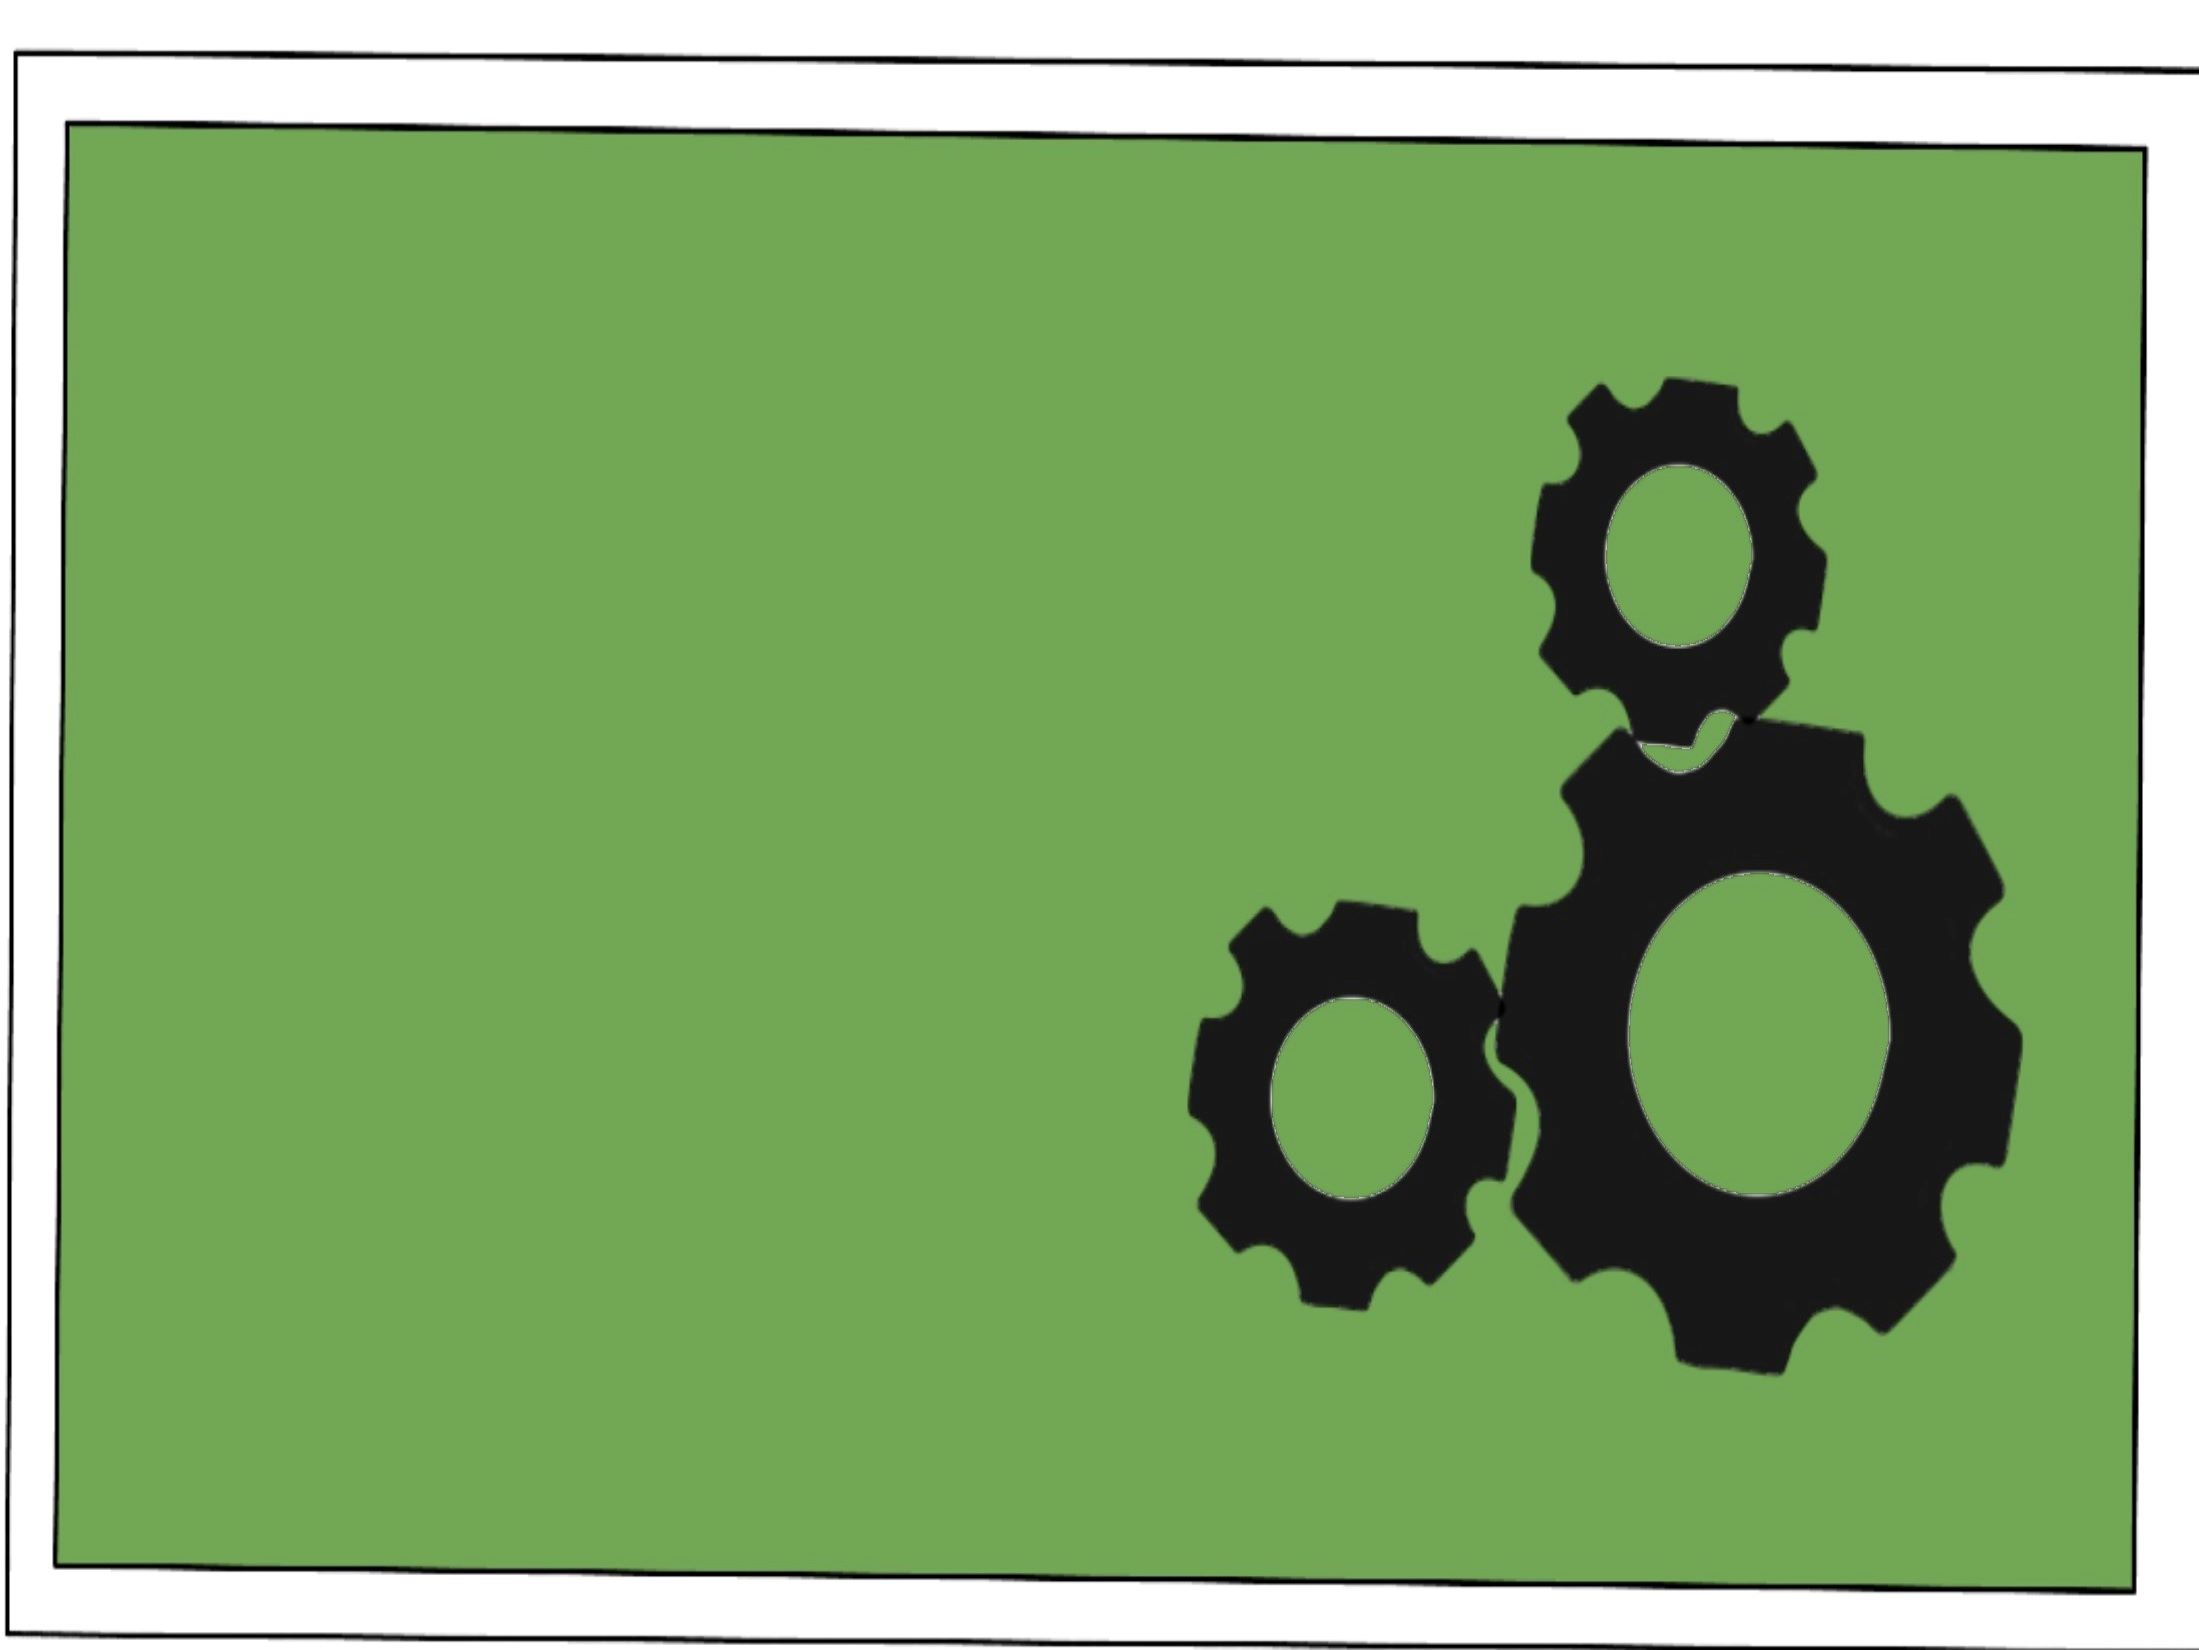 cartoon image of three gears together